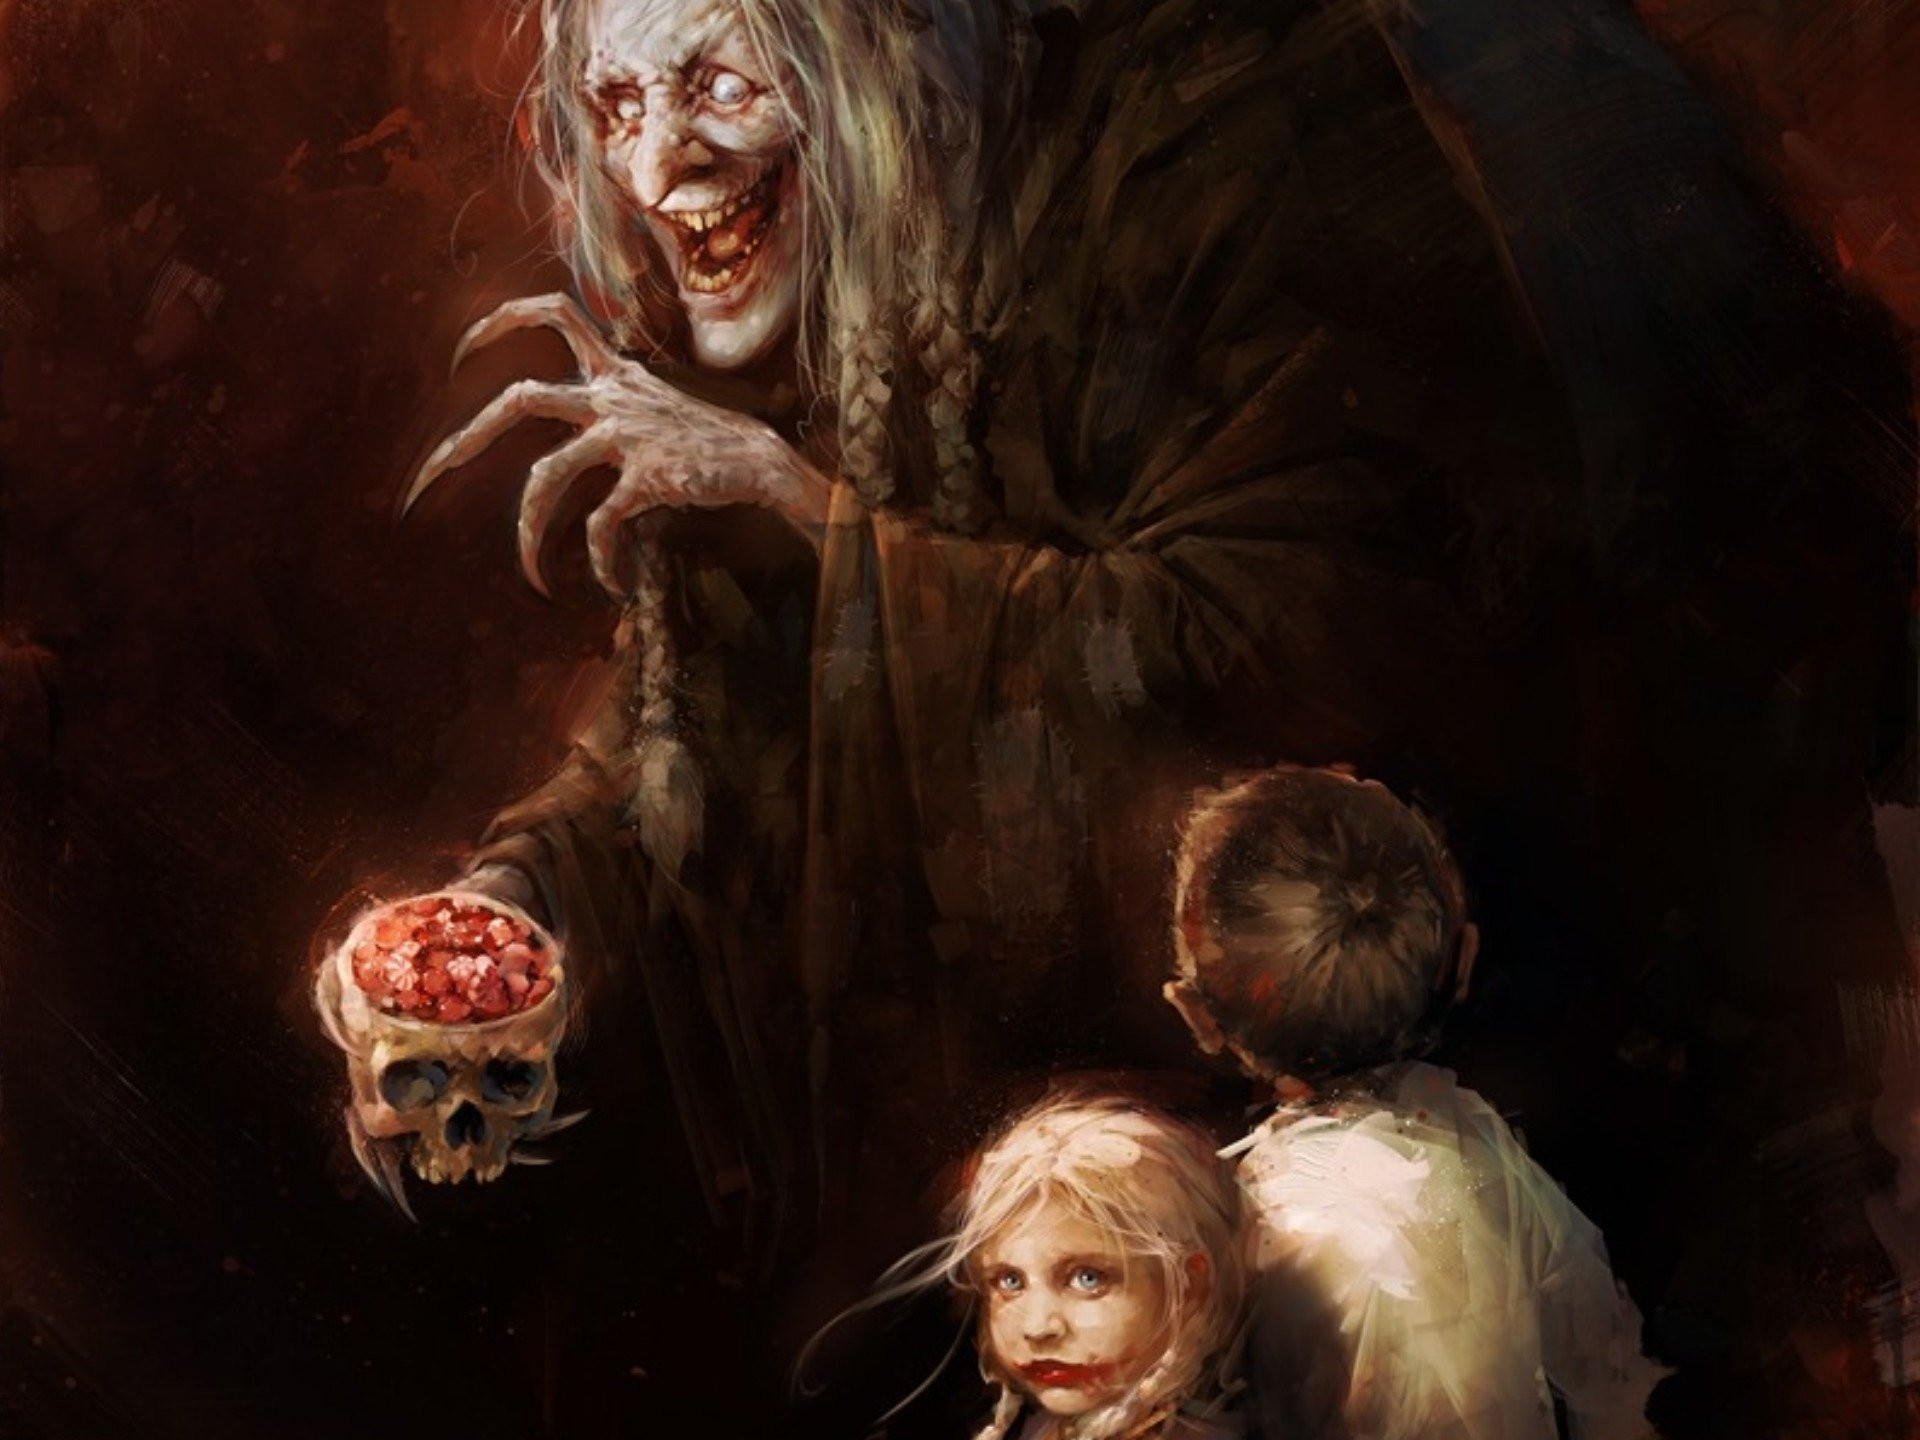 Horror Skull Witch Candy Fairy Tale Wallpaper At Dark Wallpapers